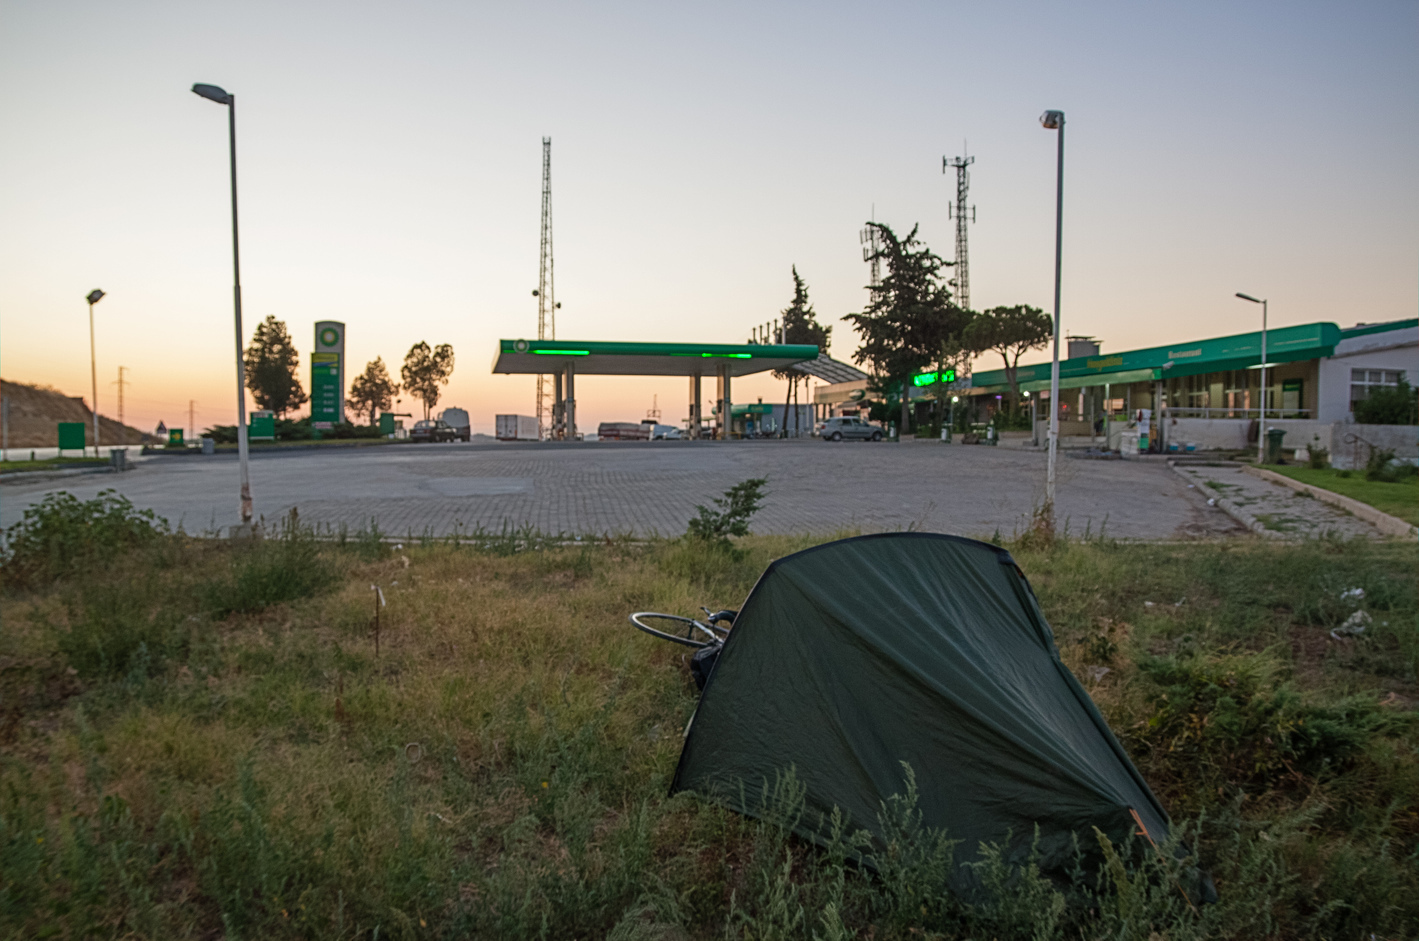 Petrol station camping in Turkey